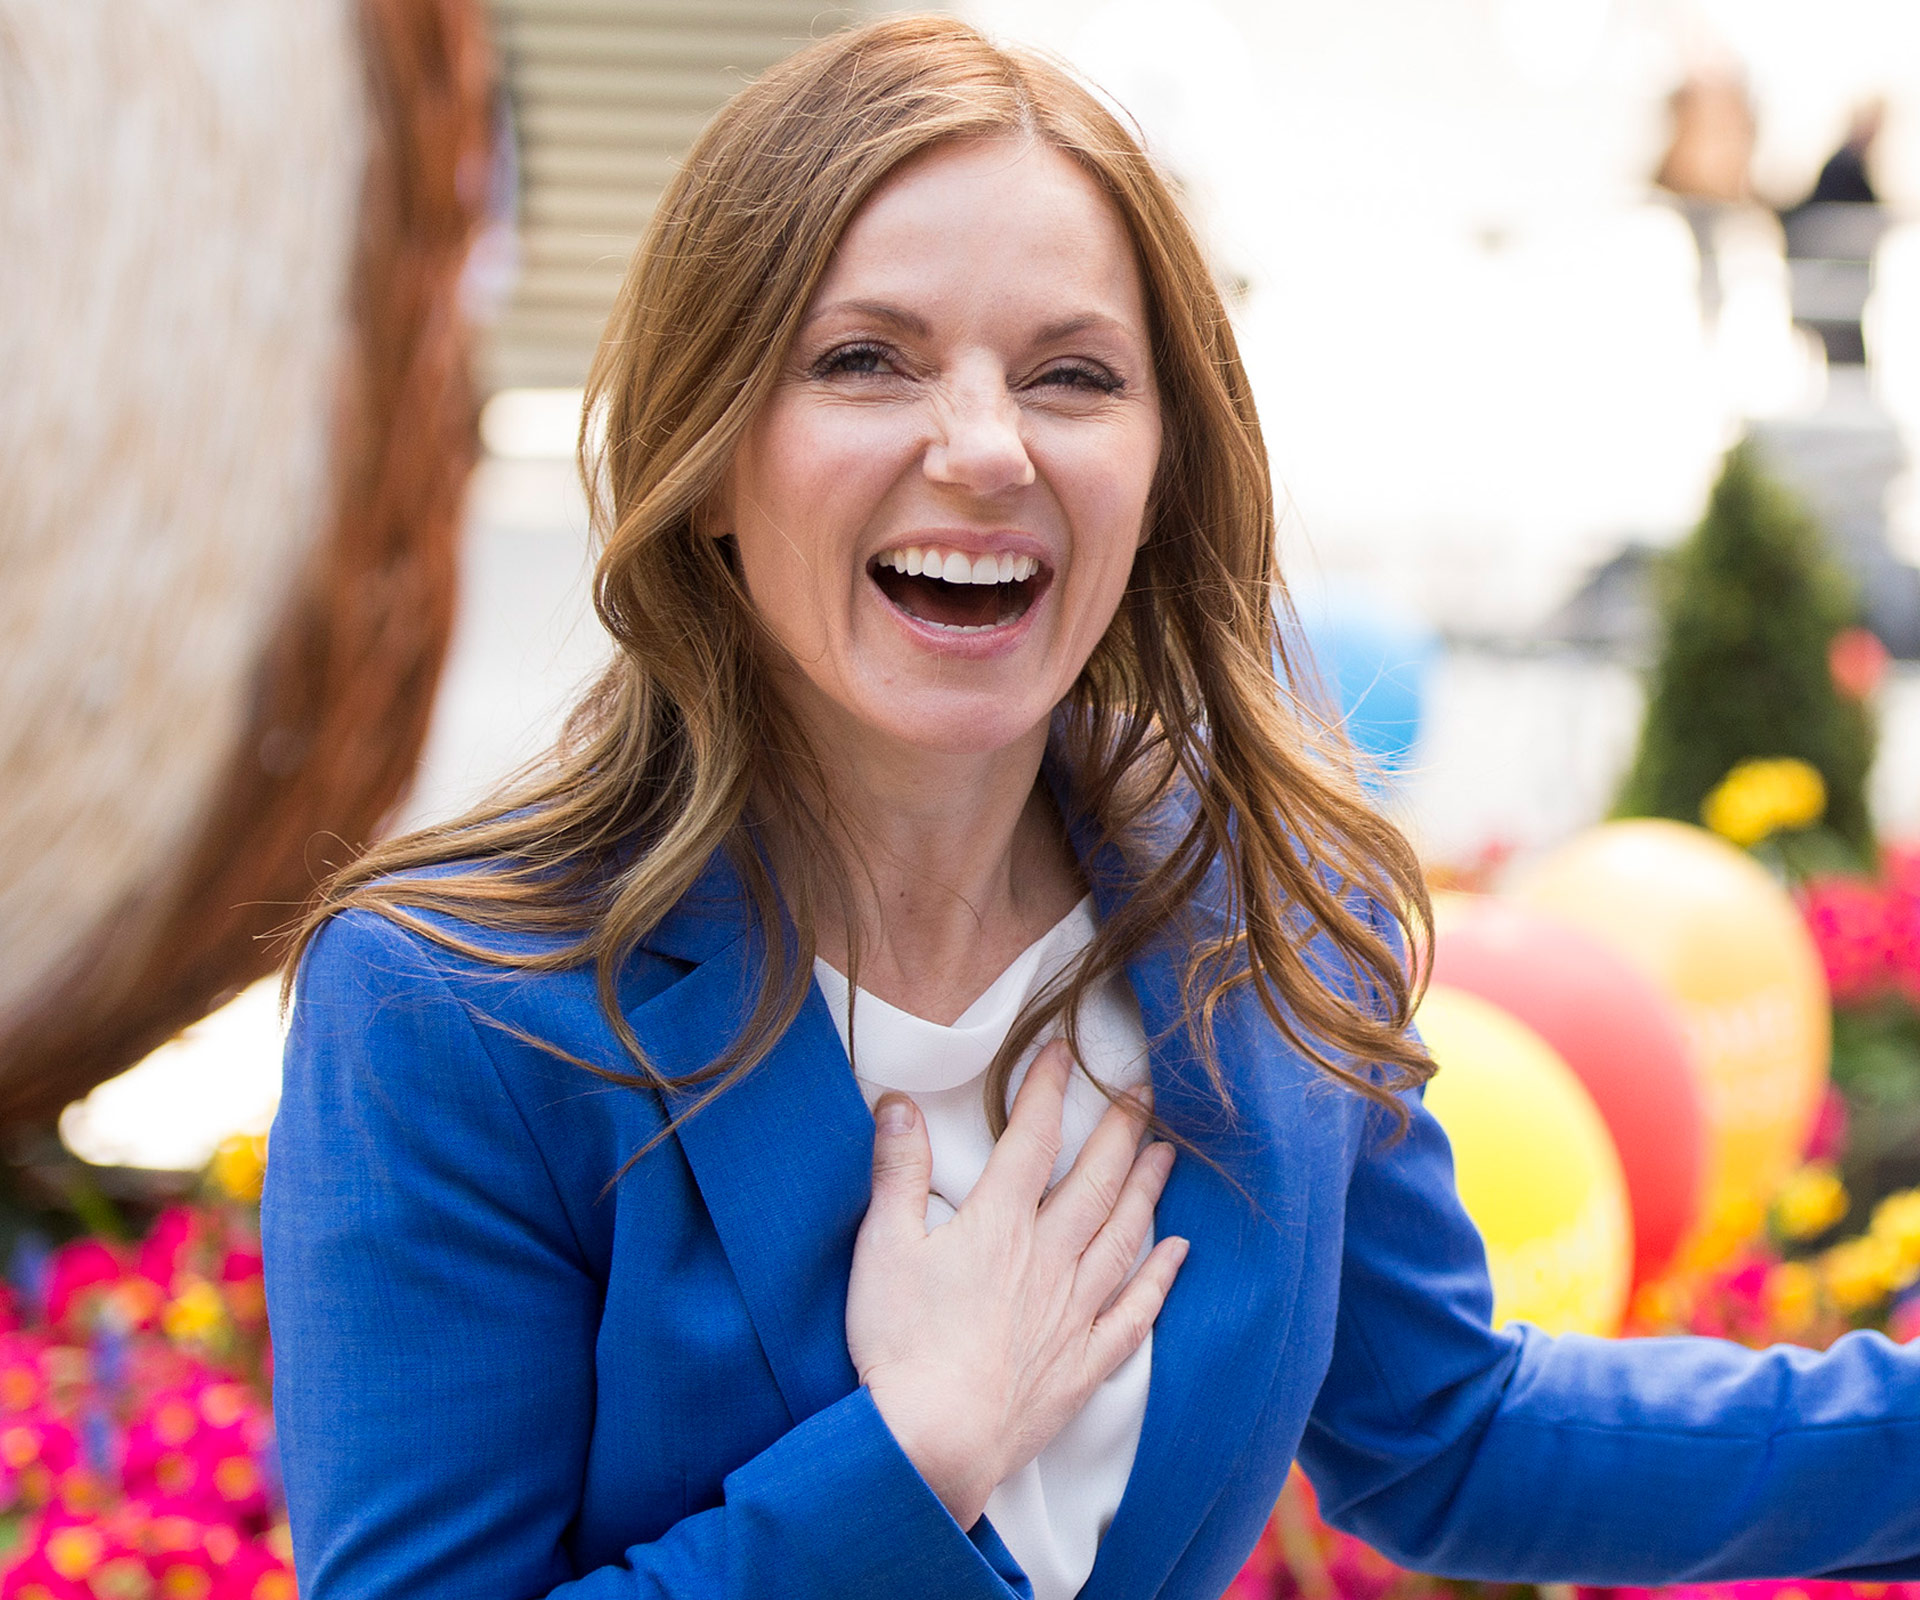 Spice Girl Geri Horner announces pregnancy